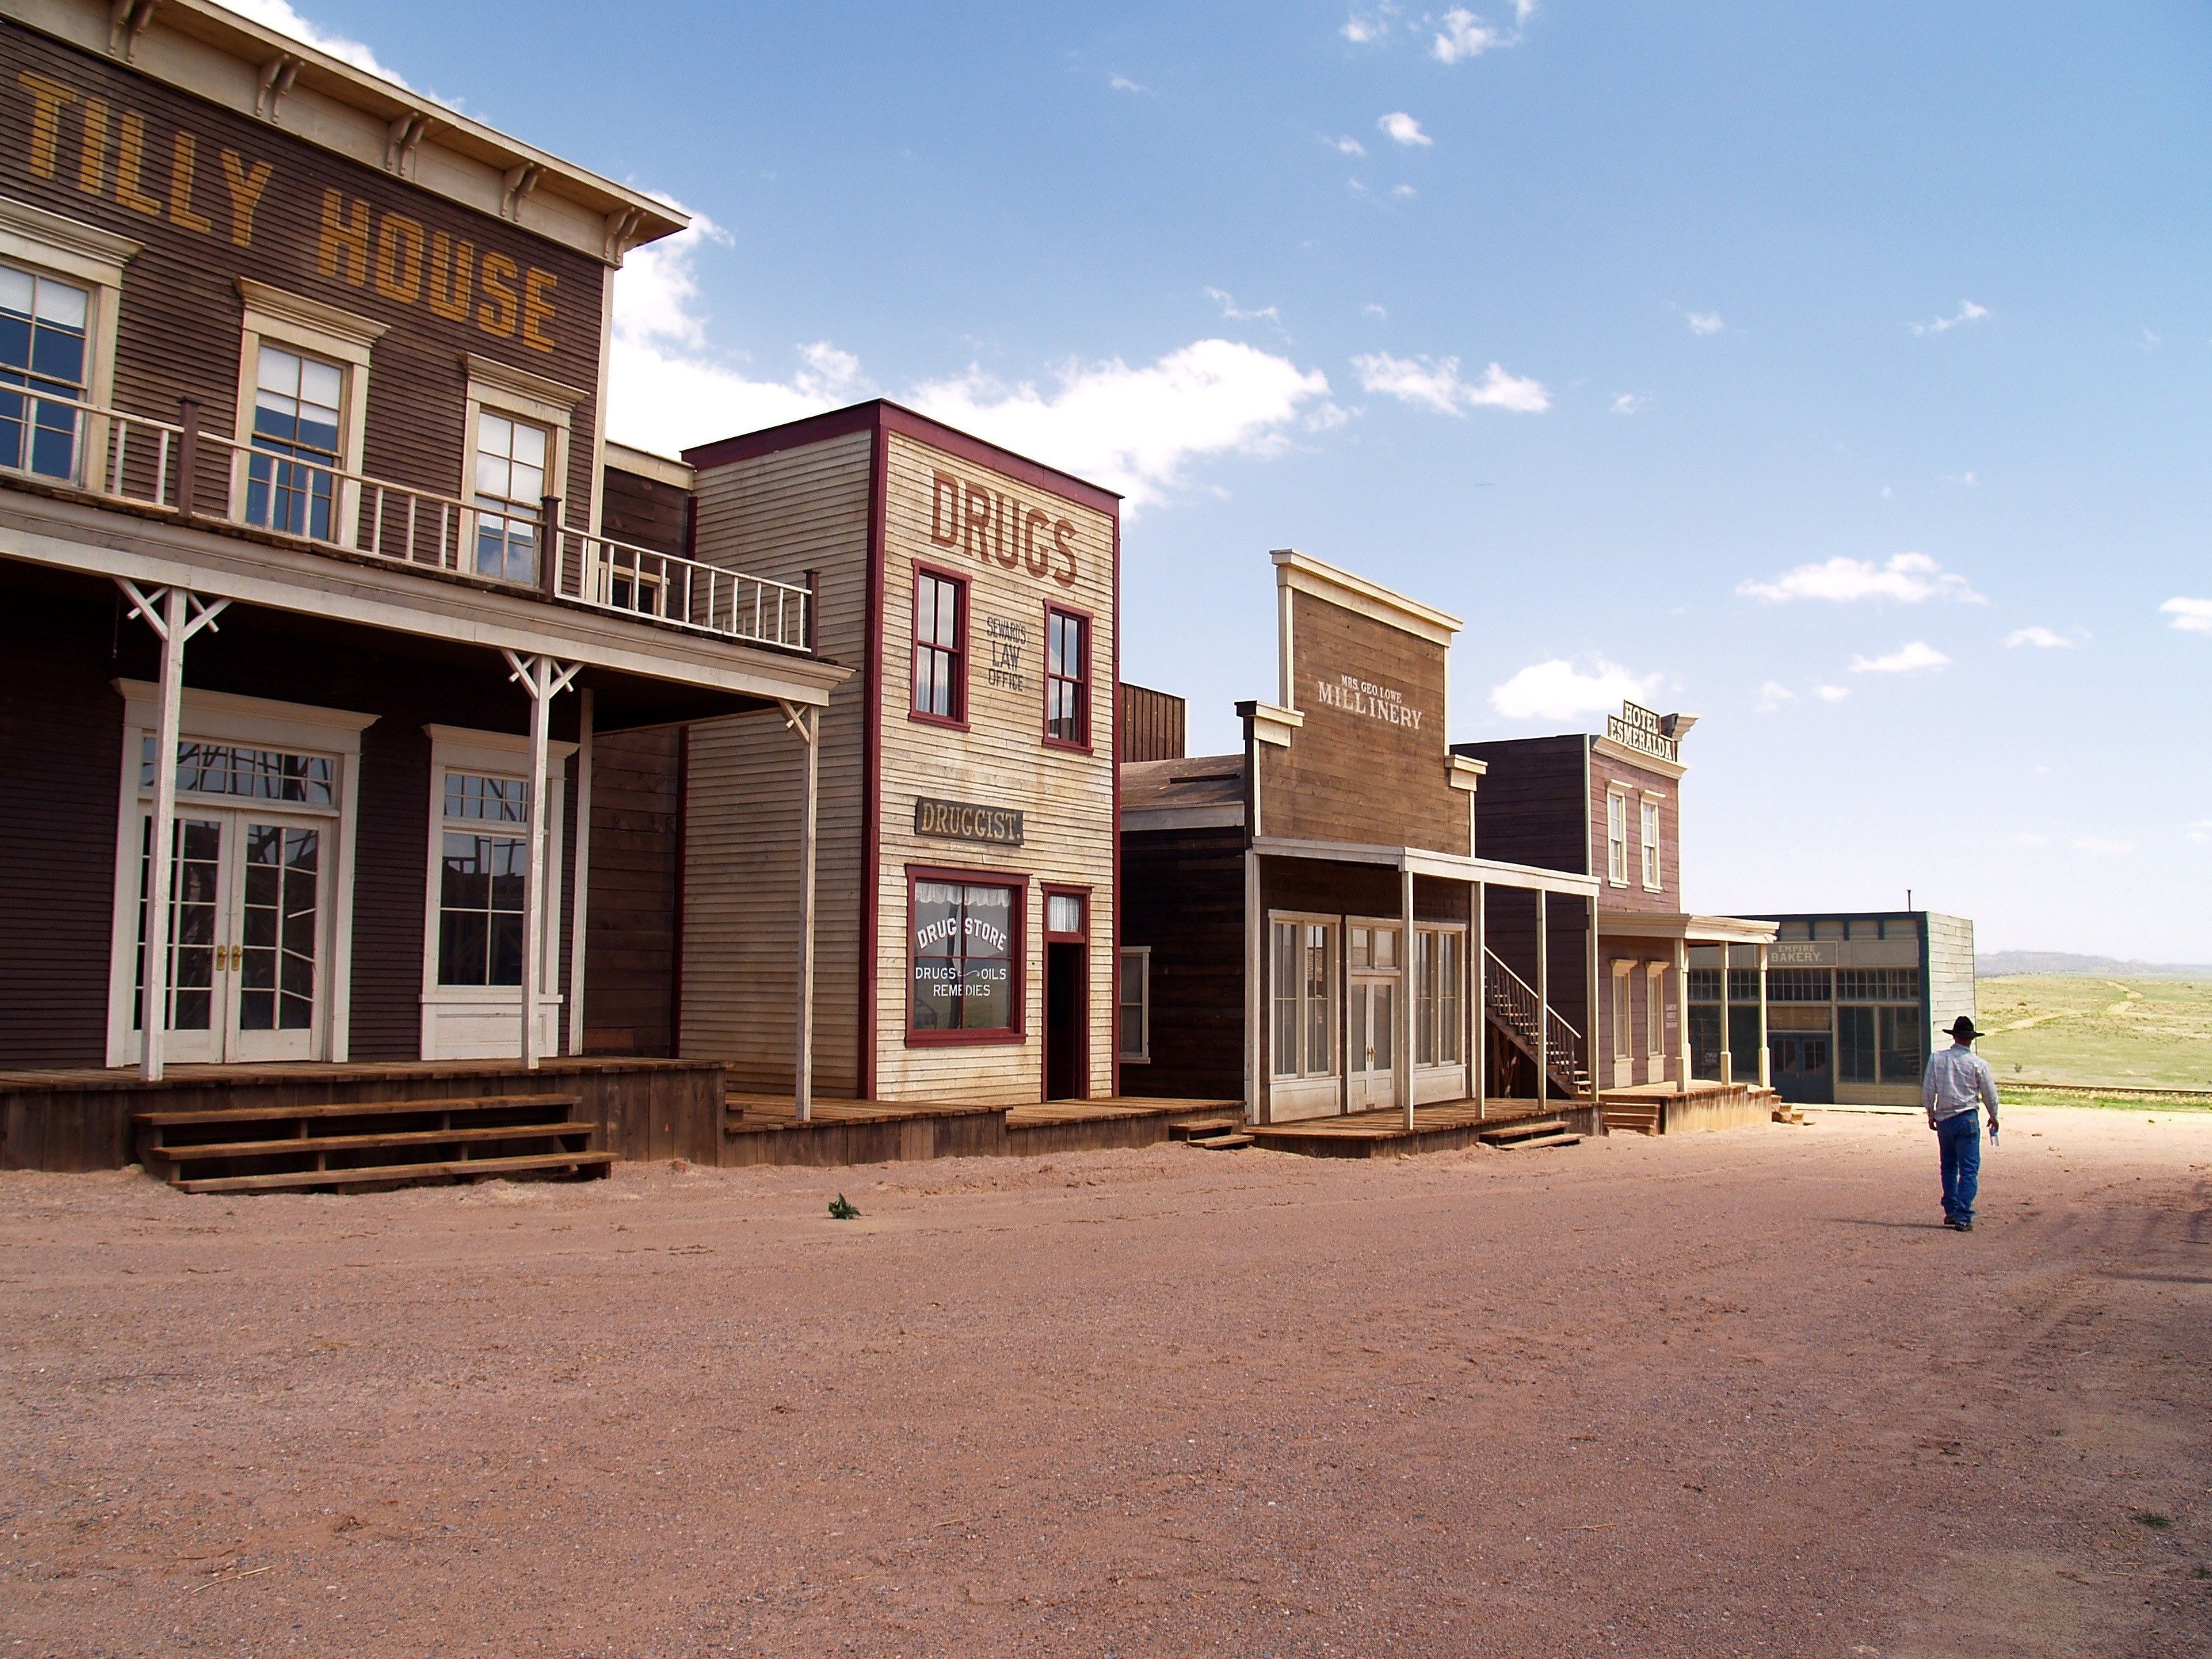 Old West Towns Night Gallery